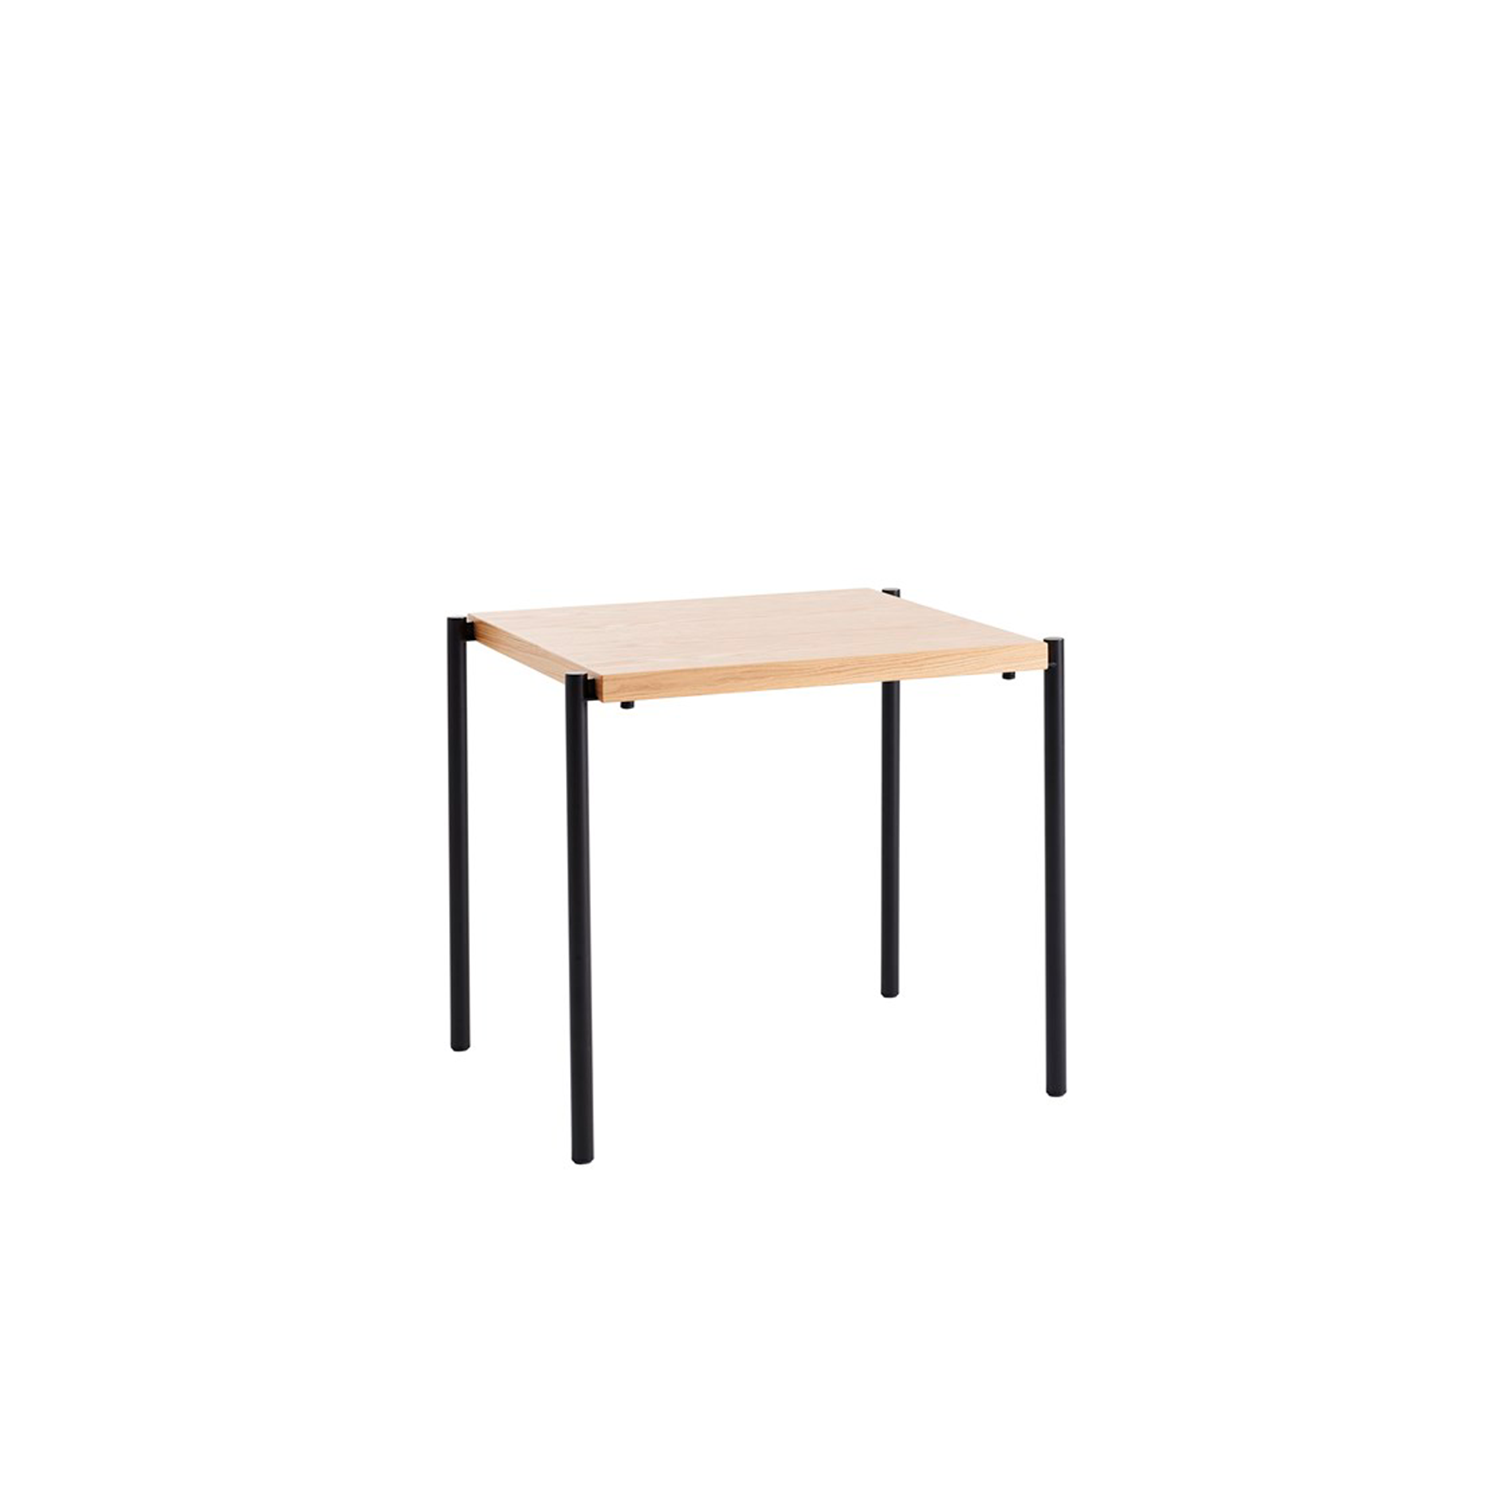 Kanecct Table - The Kanecct (2017) table system consists of tables with leg frames and connecting tabletops between the tables. The tables can be handled easily by just one person. Kanecct is ideal where flexibility is key. A room can quickly be transformed from being furnished with individual tables to being furnished with one long table – or from offering maximum seating to no seating at all. The tables can be stacked on top of each other to free up floor space.  Store connecting tabletops on a trolley or hang them on the wall.  The tables come in a width of 700 mm and lengths of 600, 700 and 1250 mm. Legs come in white or black powder coated steel. Connecting tabletops come in a width of 700 mm and in lengths of 700, 1250 and 1850 mm. All tabletops and connecting tabletops are made of framed construction with tops in veneers of oak, birch or ash, standard stains on ash and white glazed oak or ash. Tops are also available in laminate (white, black, oak, birch or ash) and black desktop. The underside of each table includes a sound-absorbent pad, stacking and saftey cover.  Please enquire for more details and configurations. | Matter of Stuff